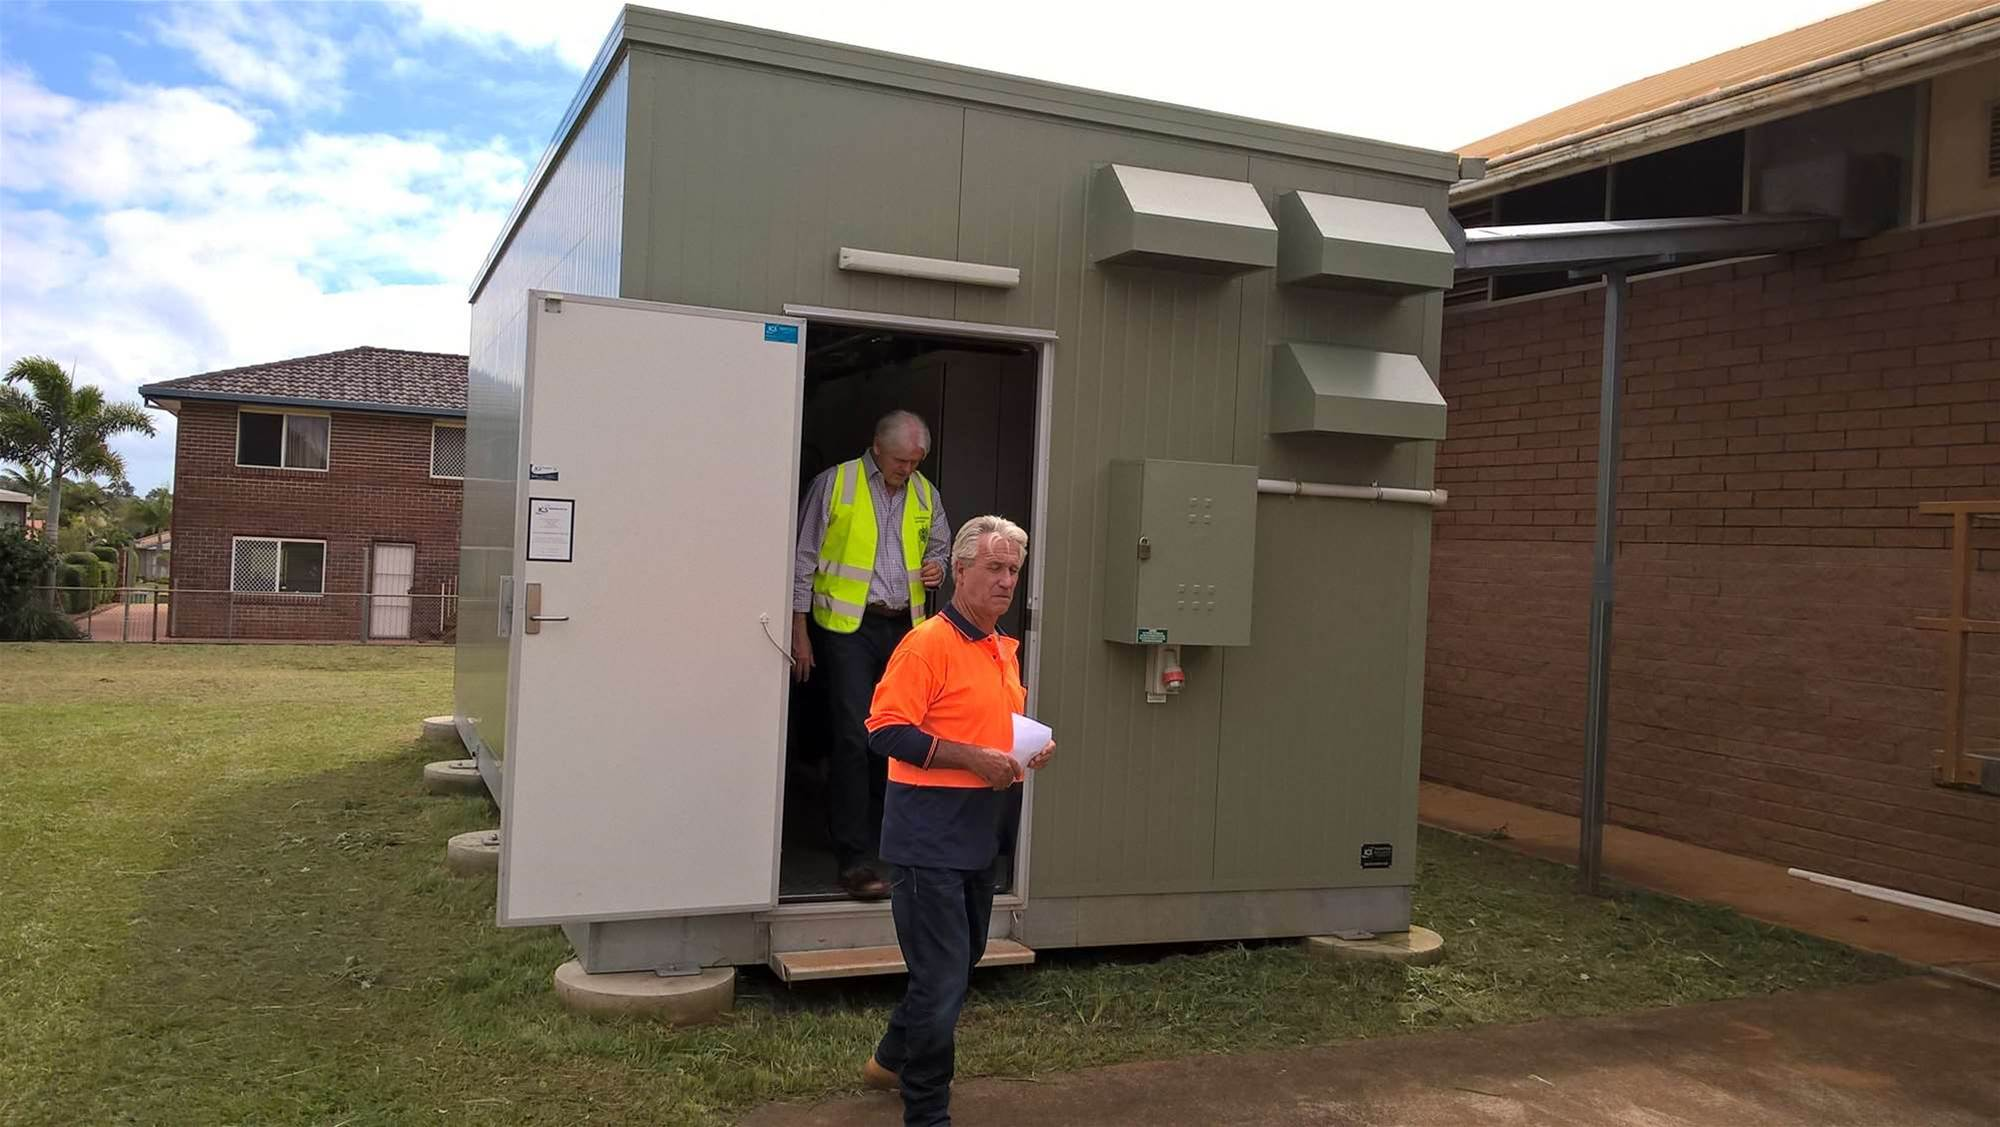 Photos: A look inside an NBN exchange